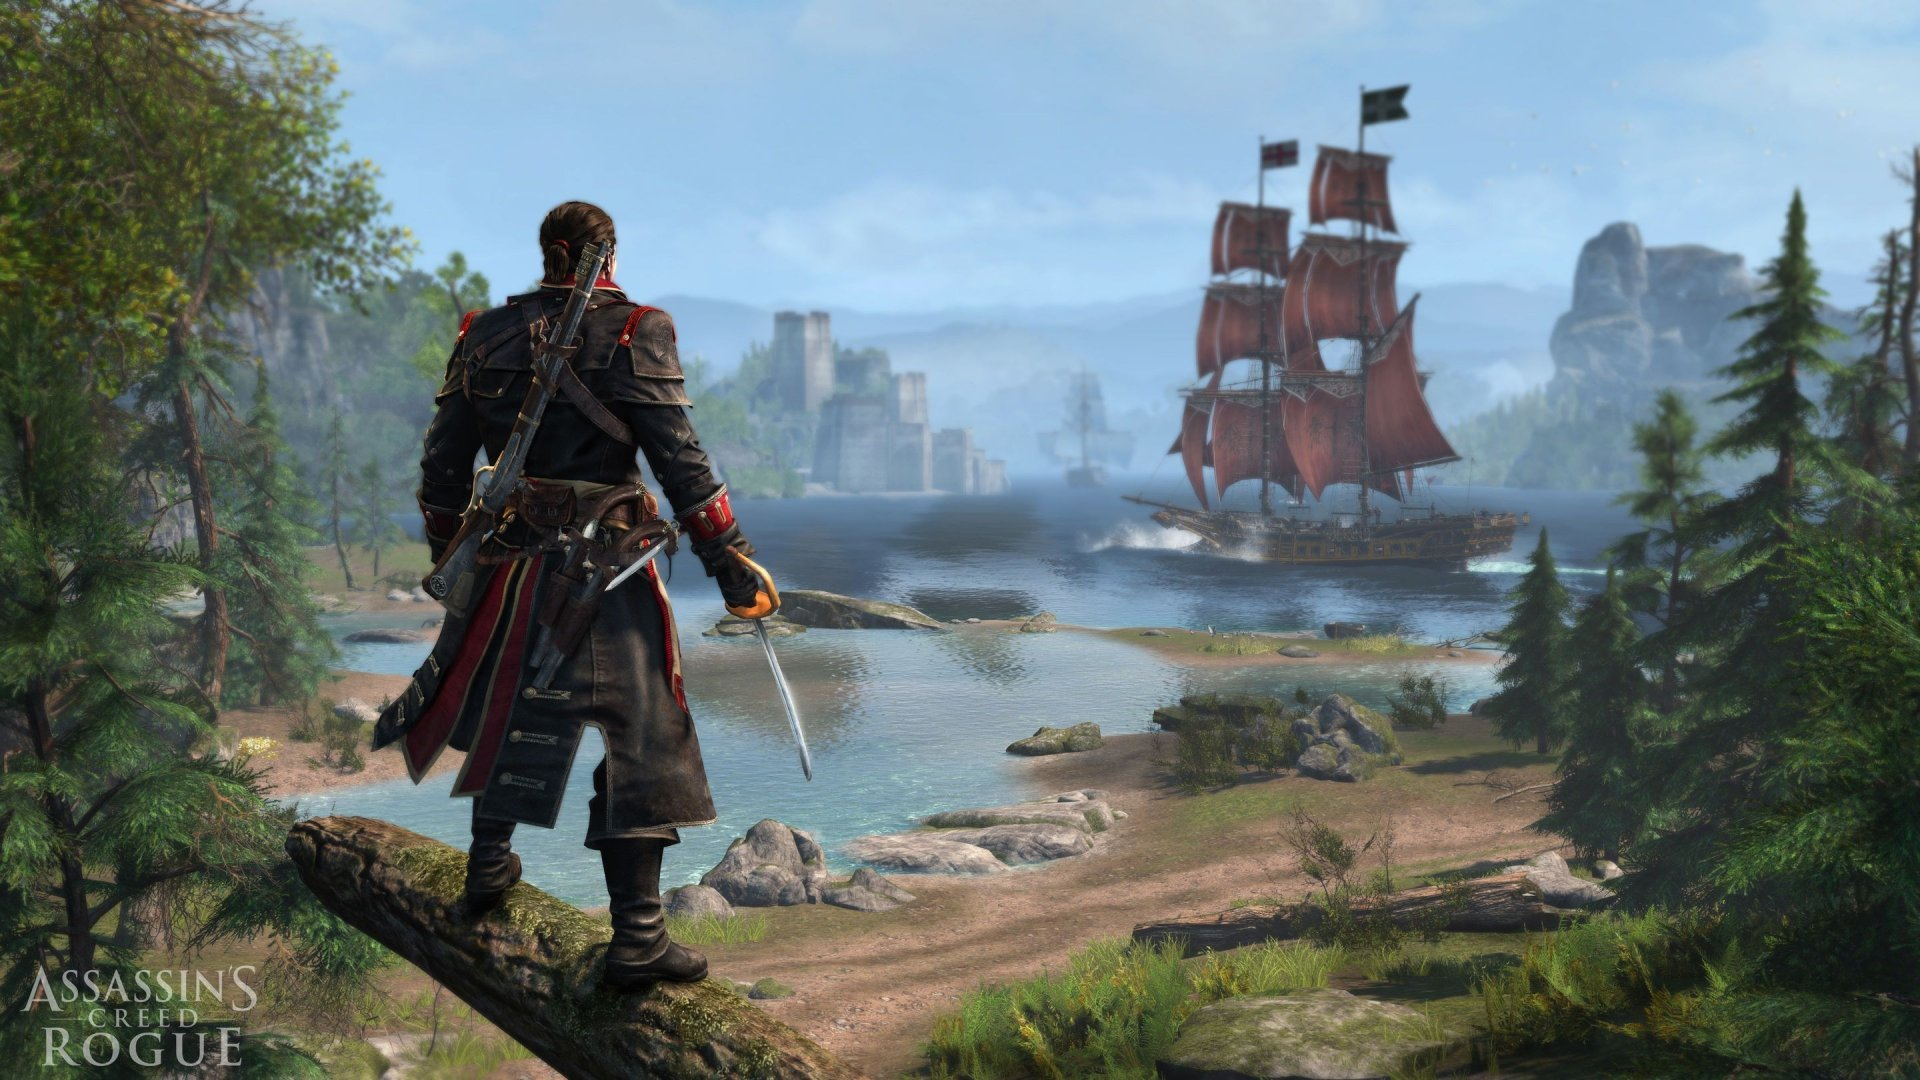 Assassin S Creed Rogue Wallpapers 1920x1080 Full Hd 1080p